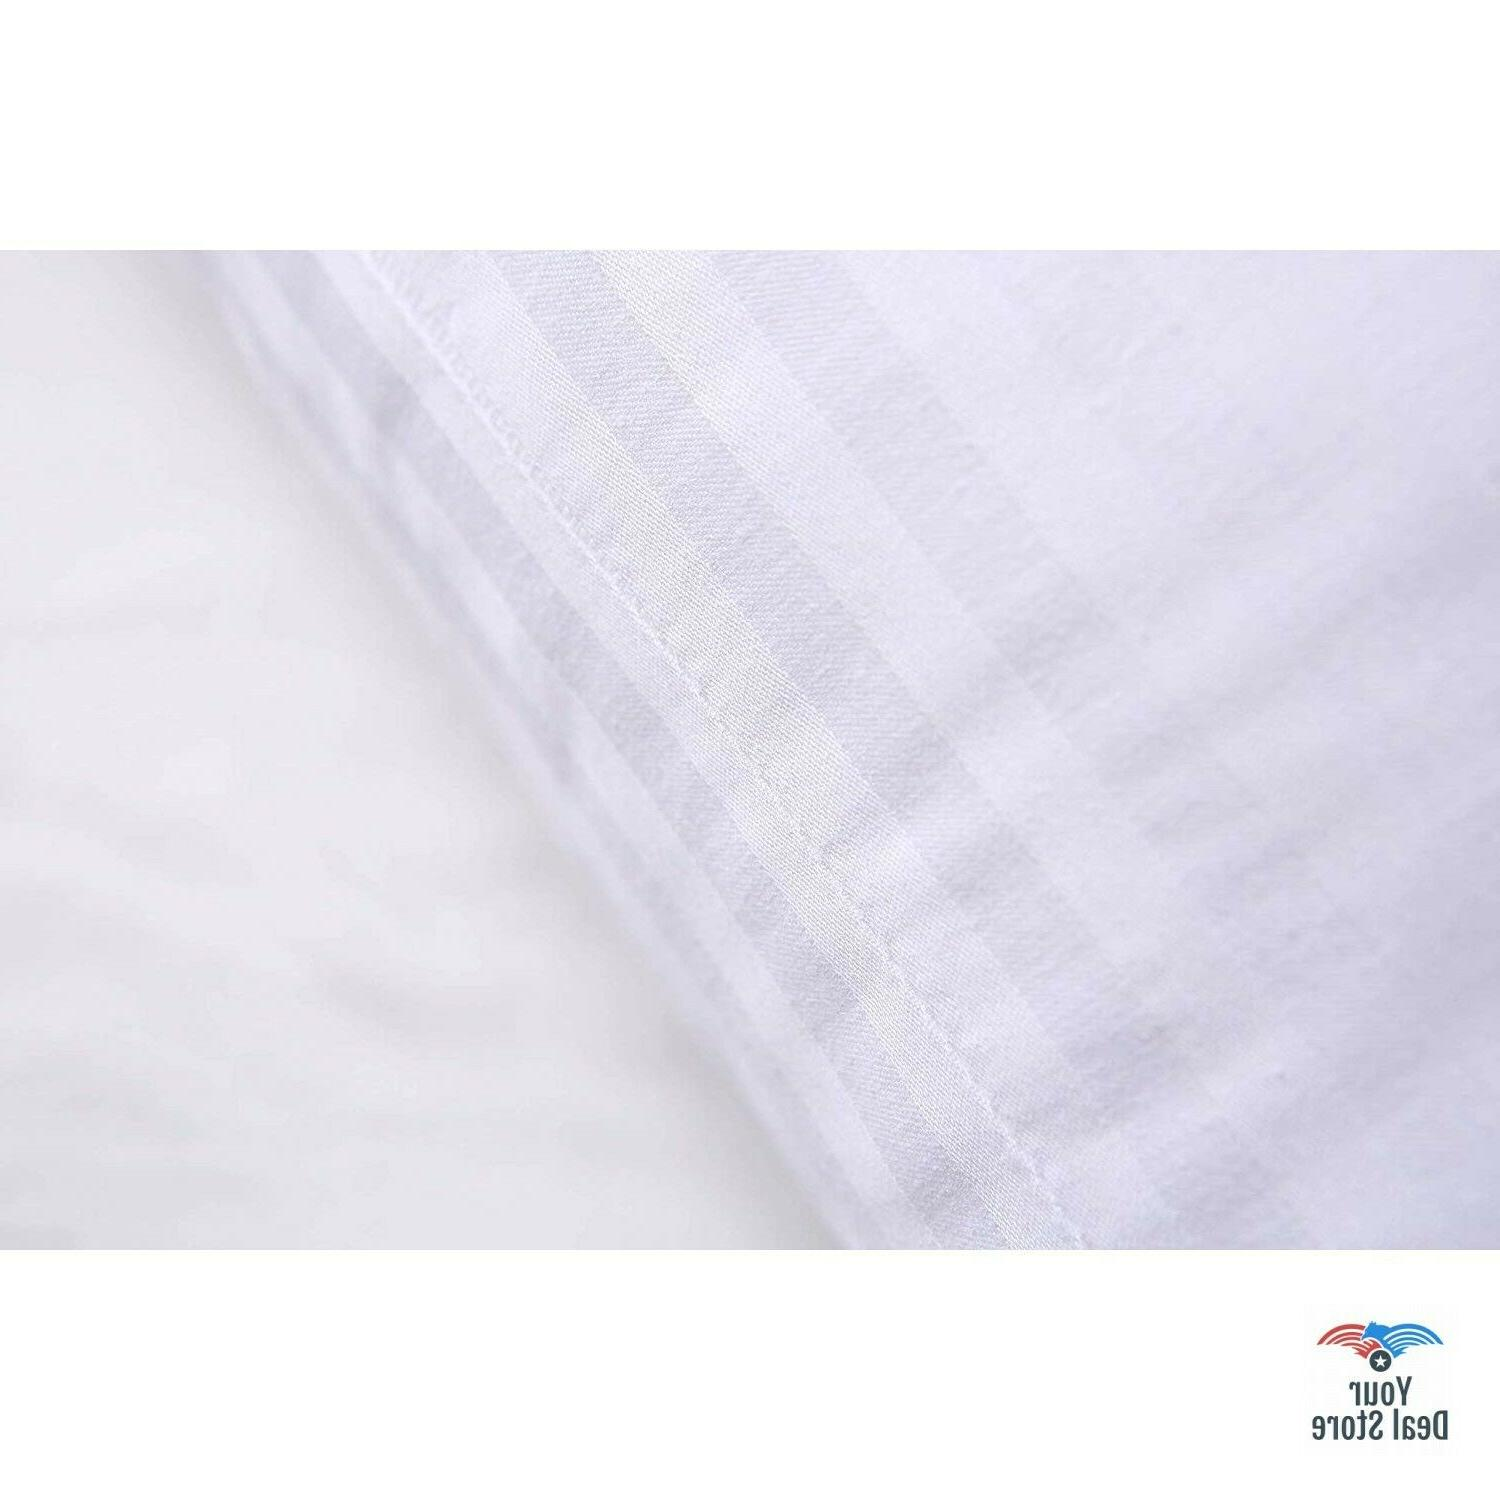 Extra Large Comfy Great Pregnancy Bedding